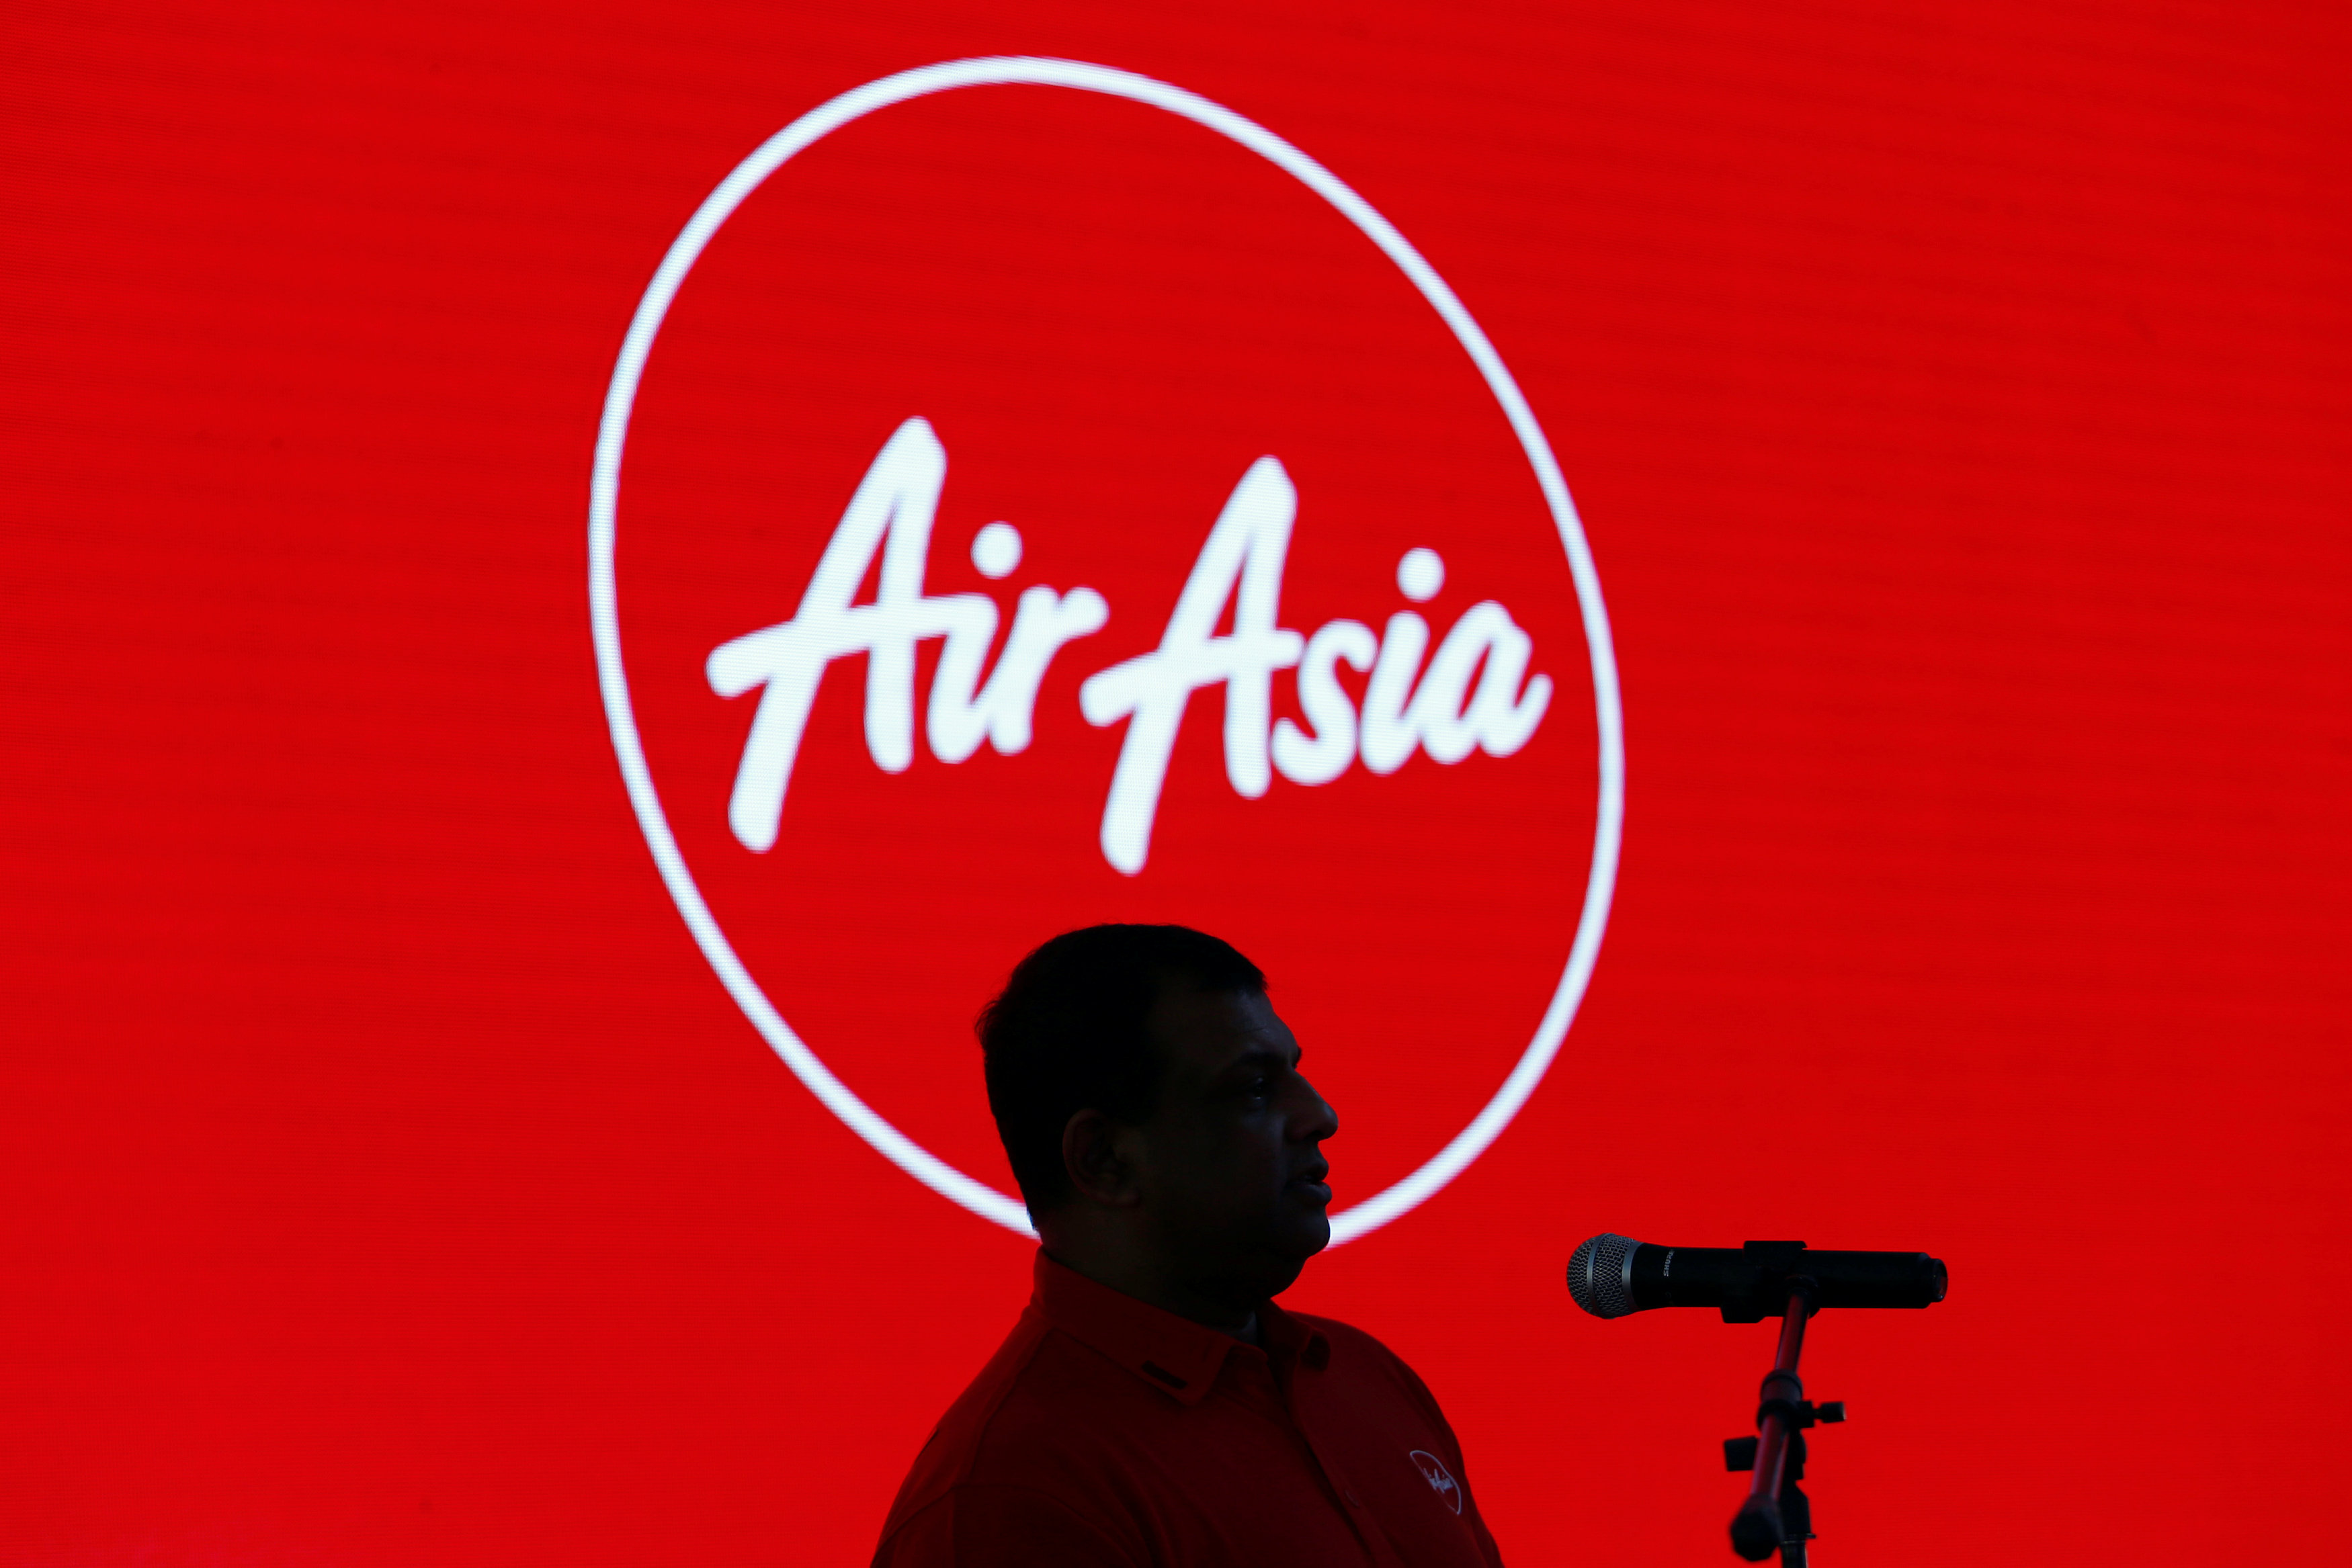 Previously on October 8, AirAsia Group CEO Tan Sri Tony Fernandes was reported by news wire Reuters as saying that a US firm had recently offered to give a loan of up to US$1 billion (RM4.14). —  Reuters pic